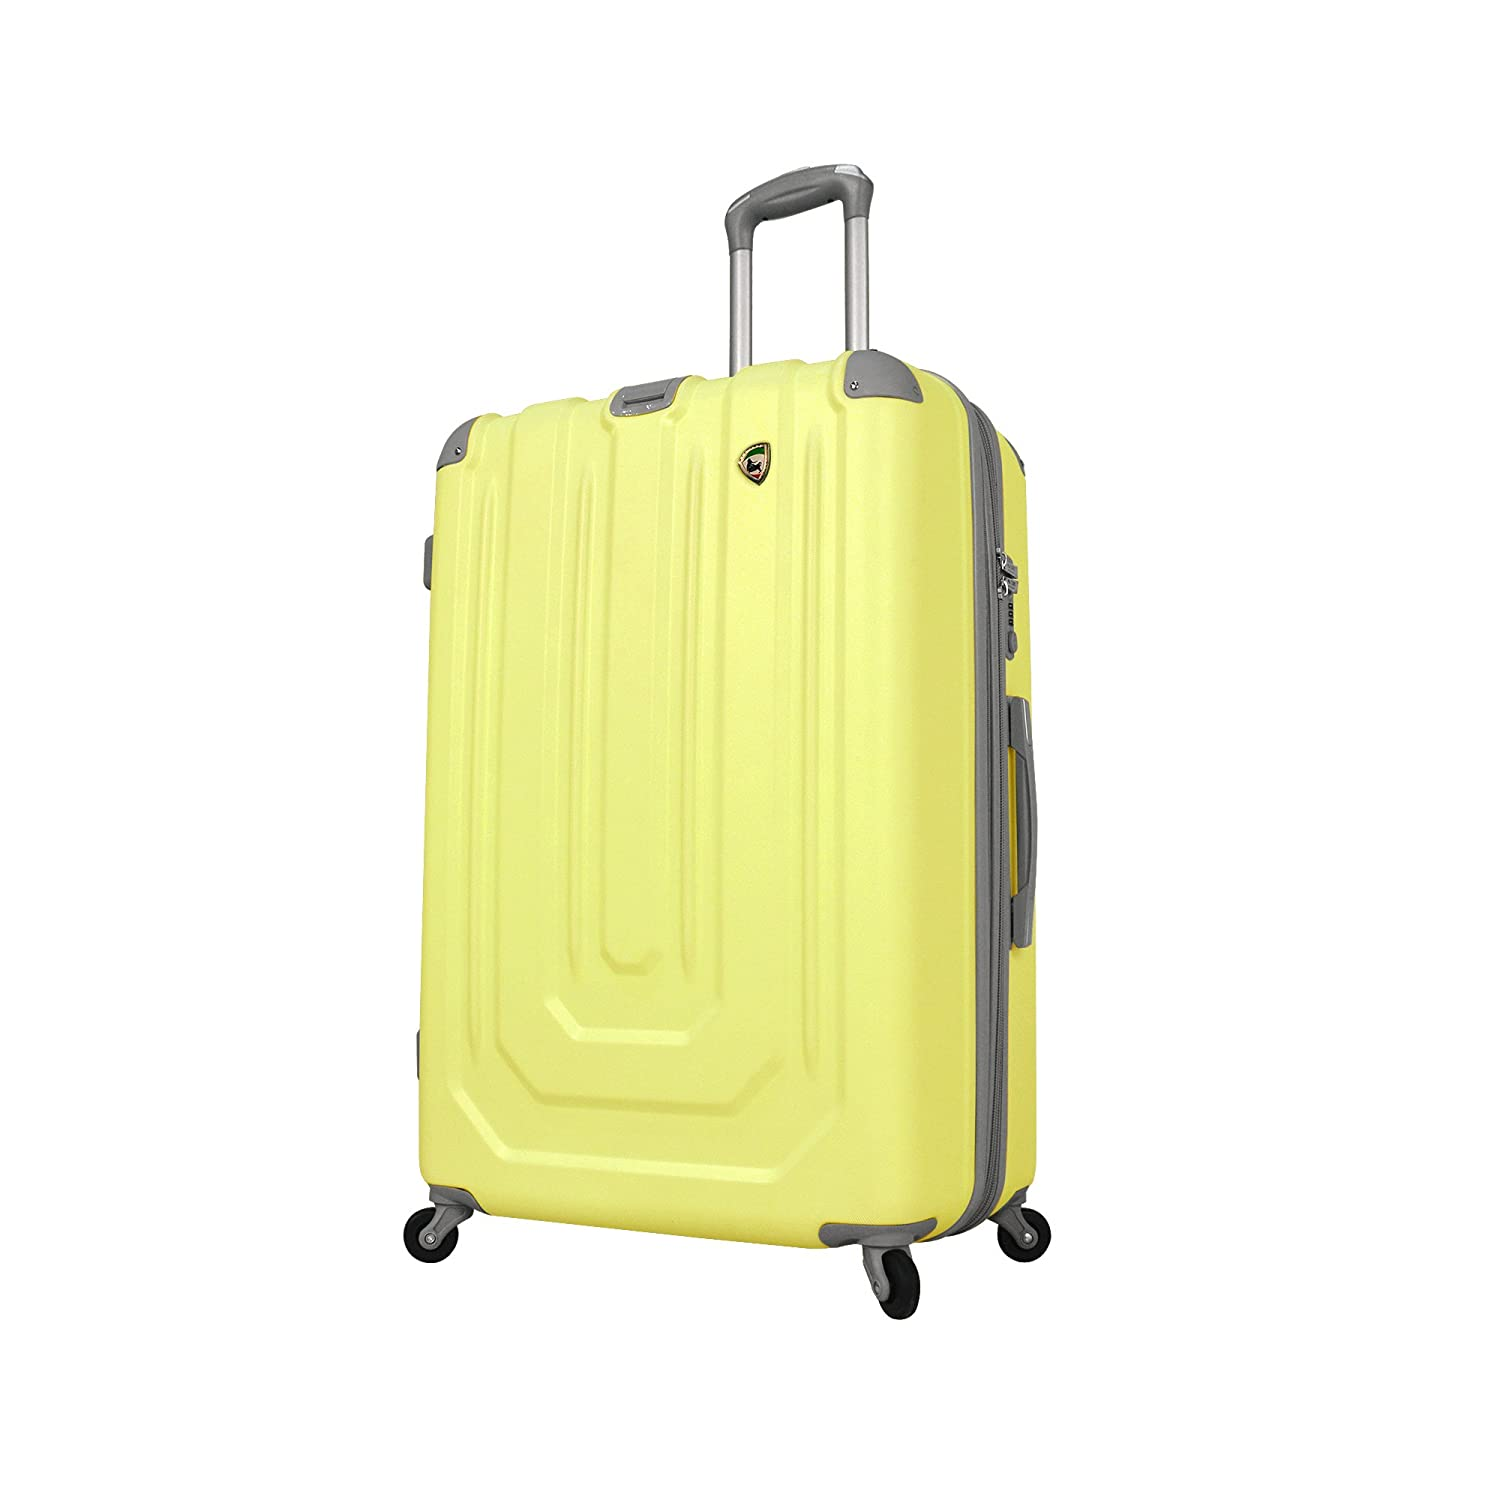 Mia Toro Luggage Pastello Composite Hardside 29 Inch Spinner, Yellow, One Size M1004-29in-YEL